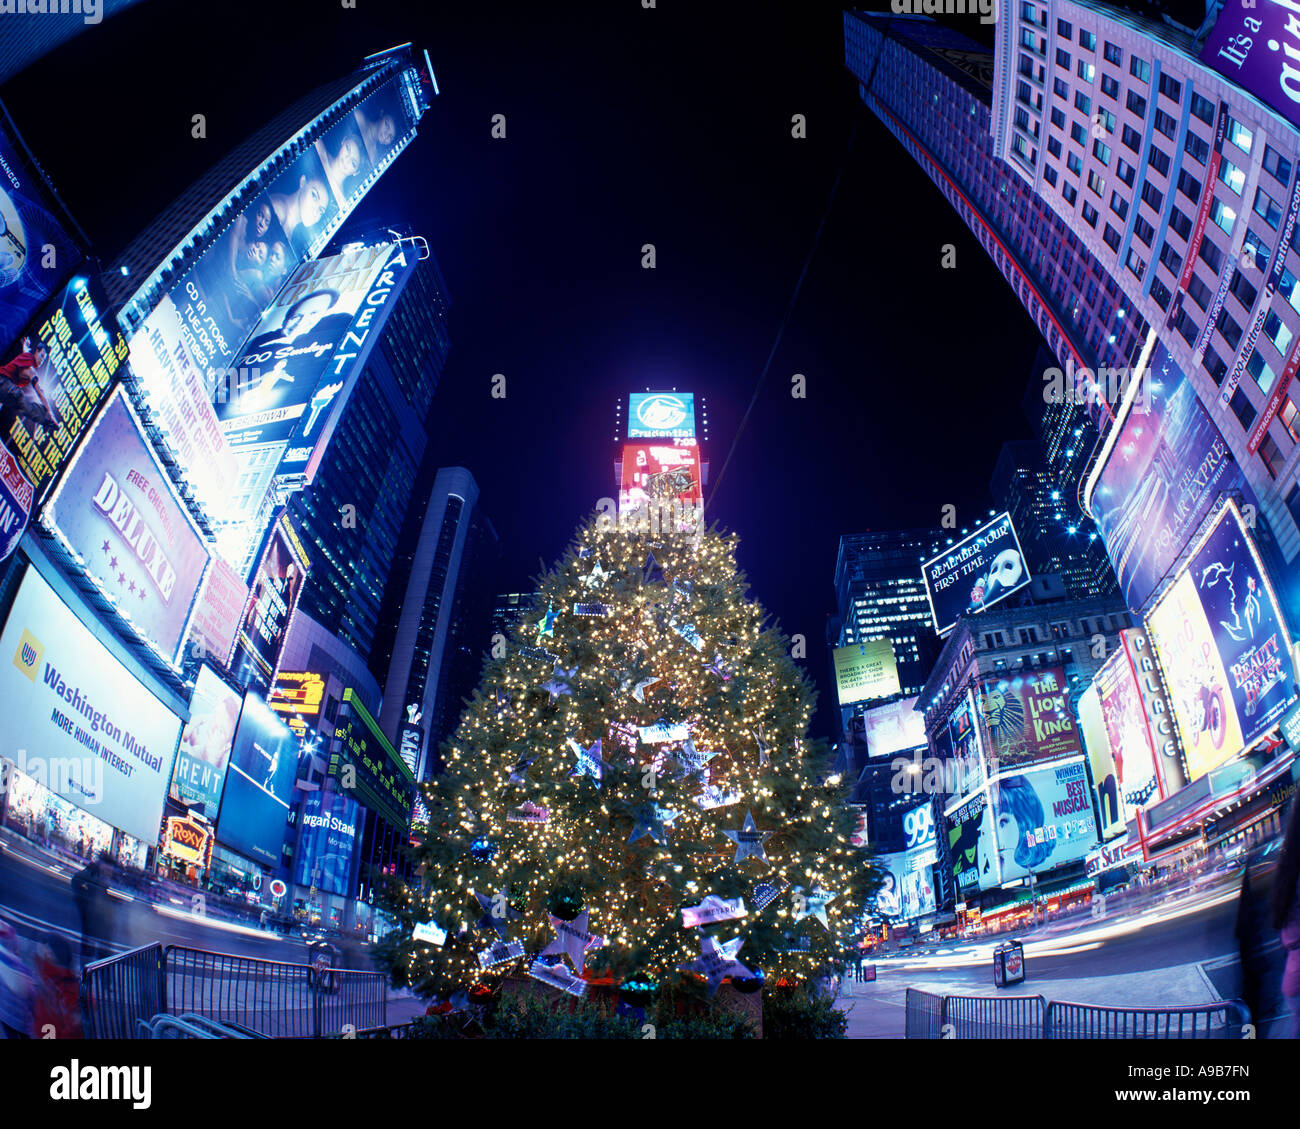 Christmas Tree In Ny: CHRISTMAS TREE LIGHTS TIMES SQUARE MIDTOWN MANHATTAN NEW